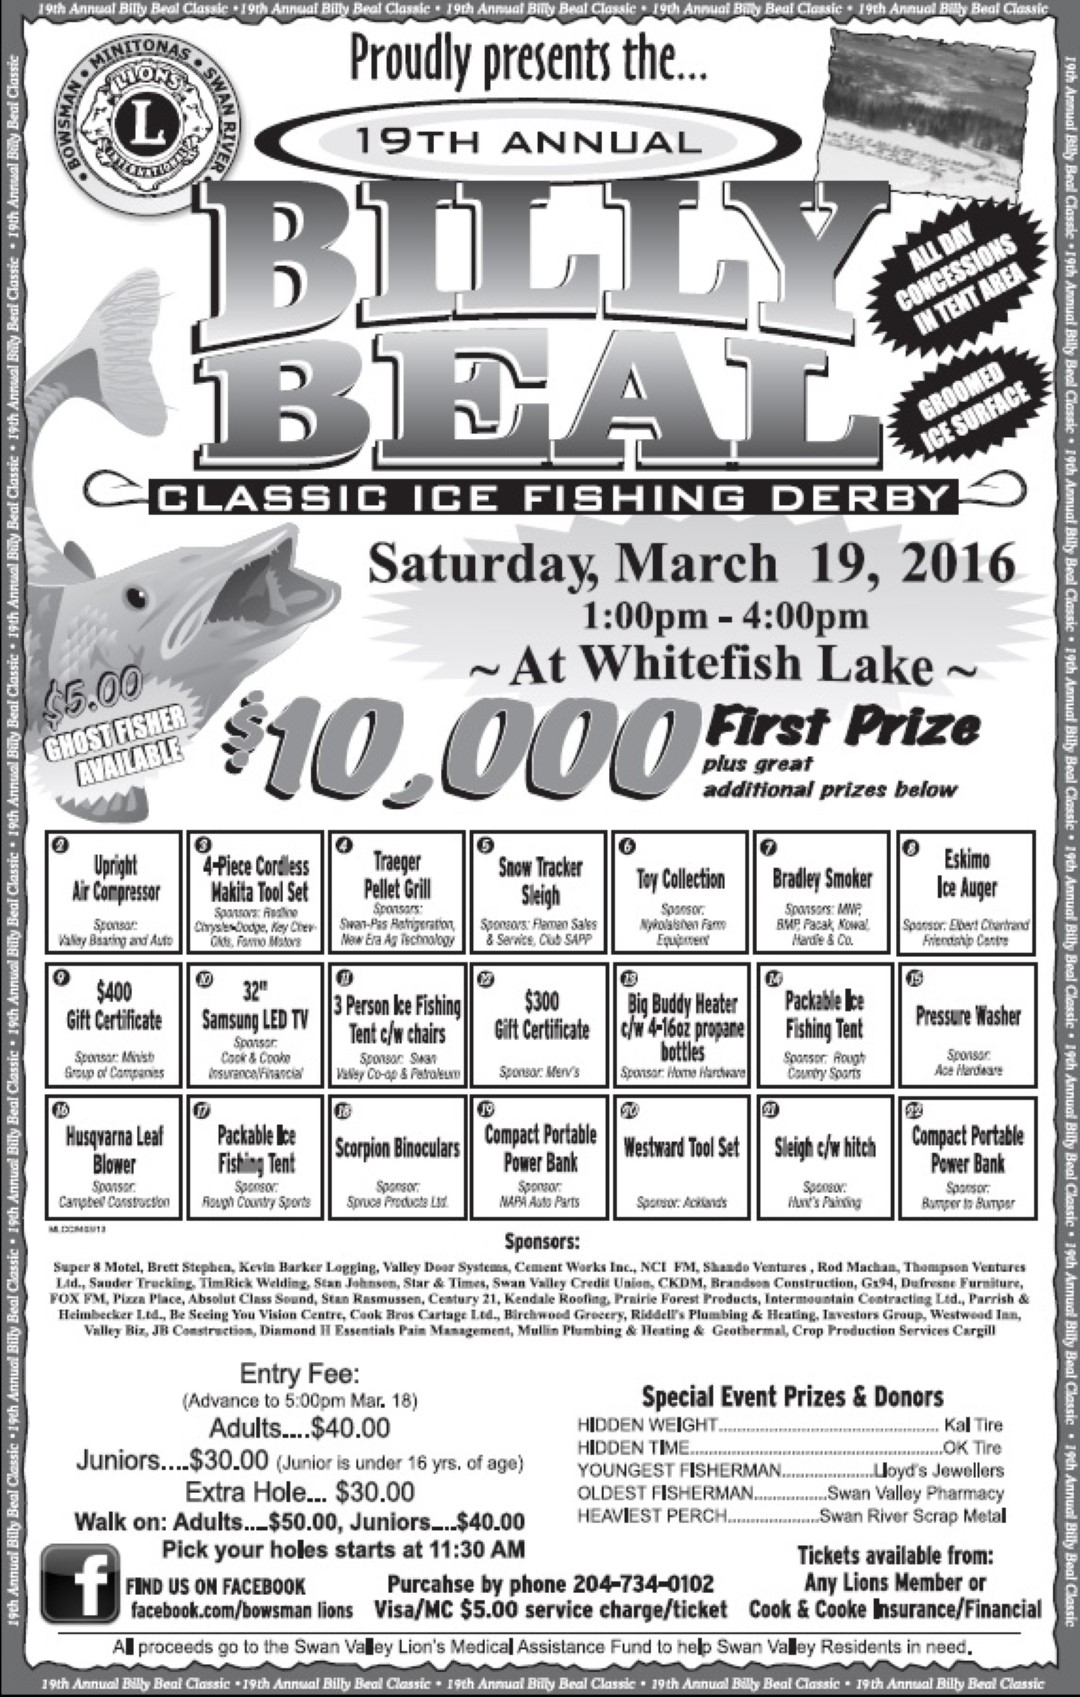 2016 Billy Beal Ice Fishing Derby poster